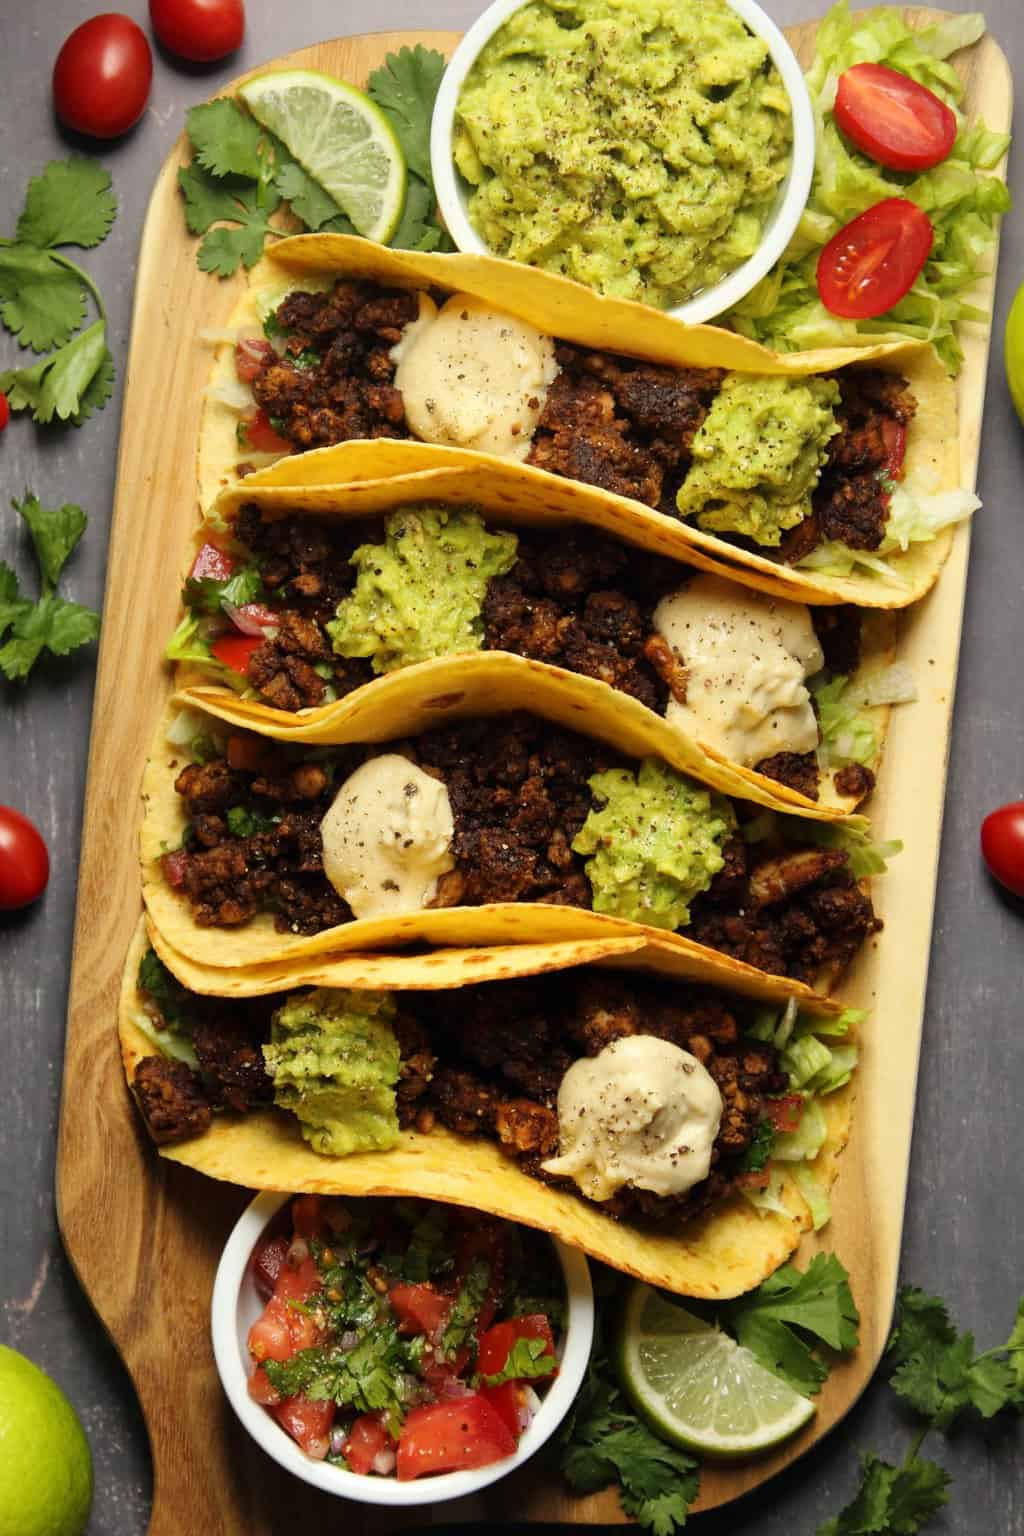 Vegan taco meat in tacos with shredded lettuce, salsa, guacamole and vegan sour cream on a wooden board.